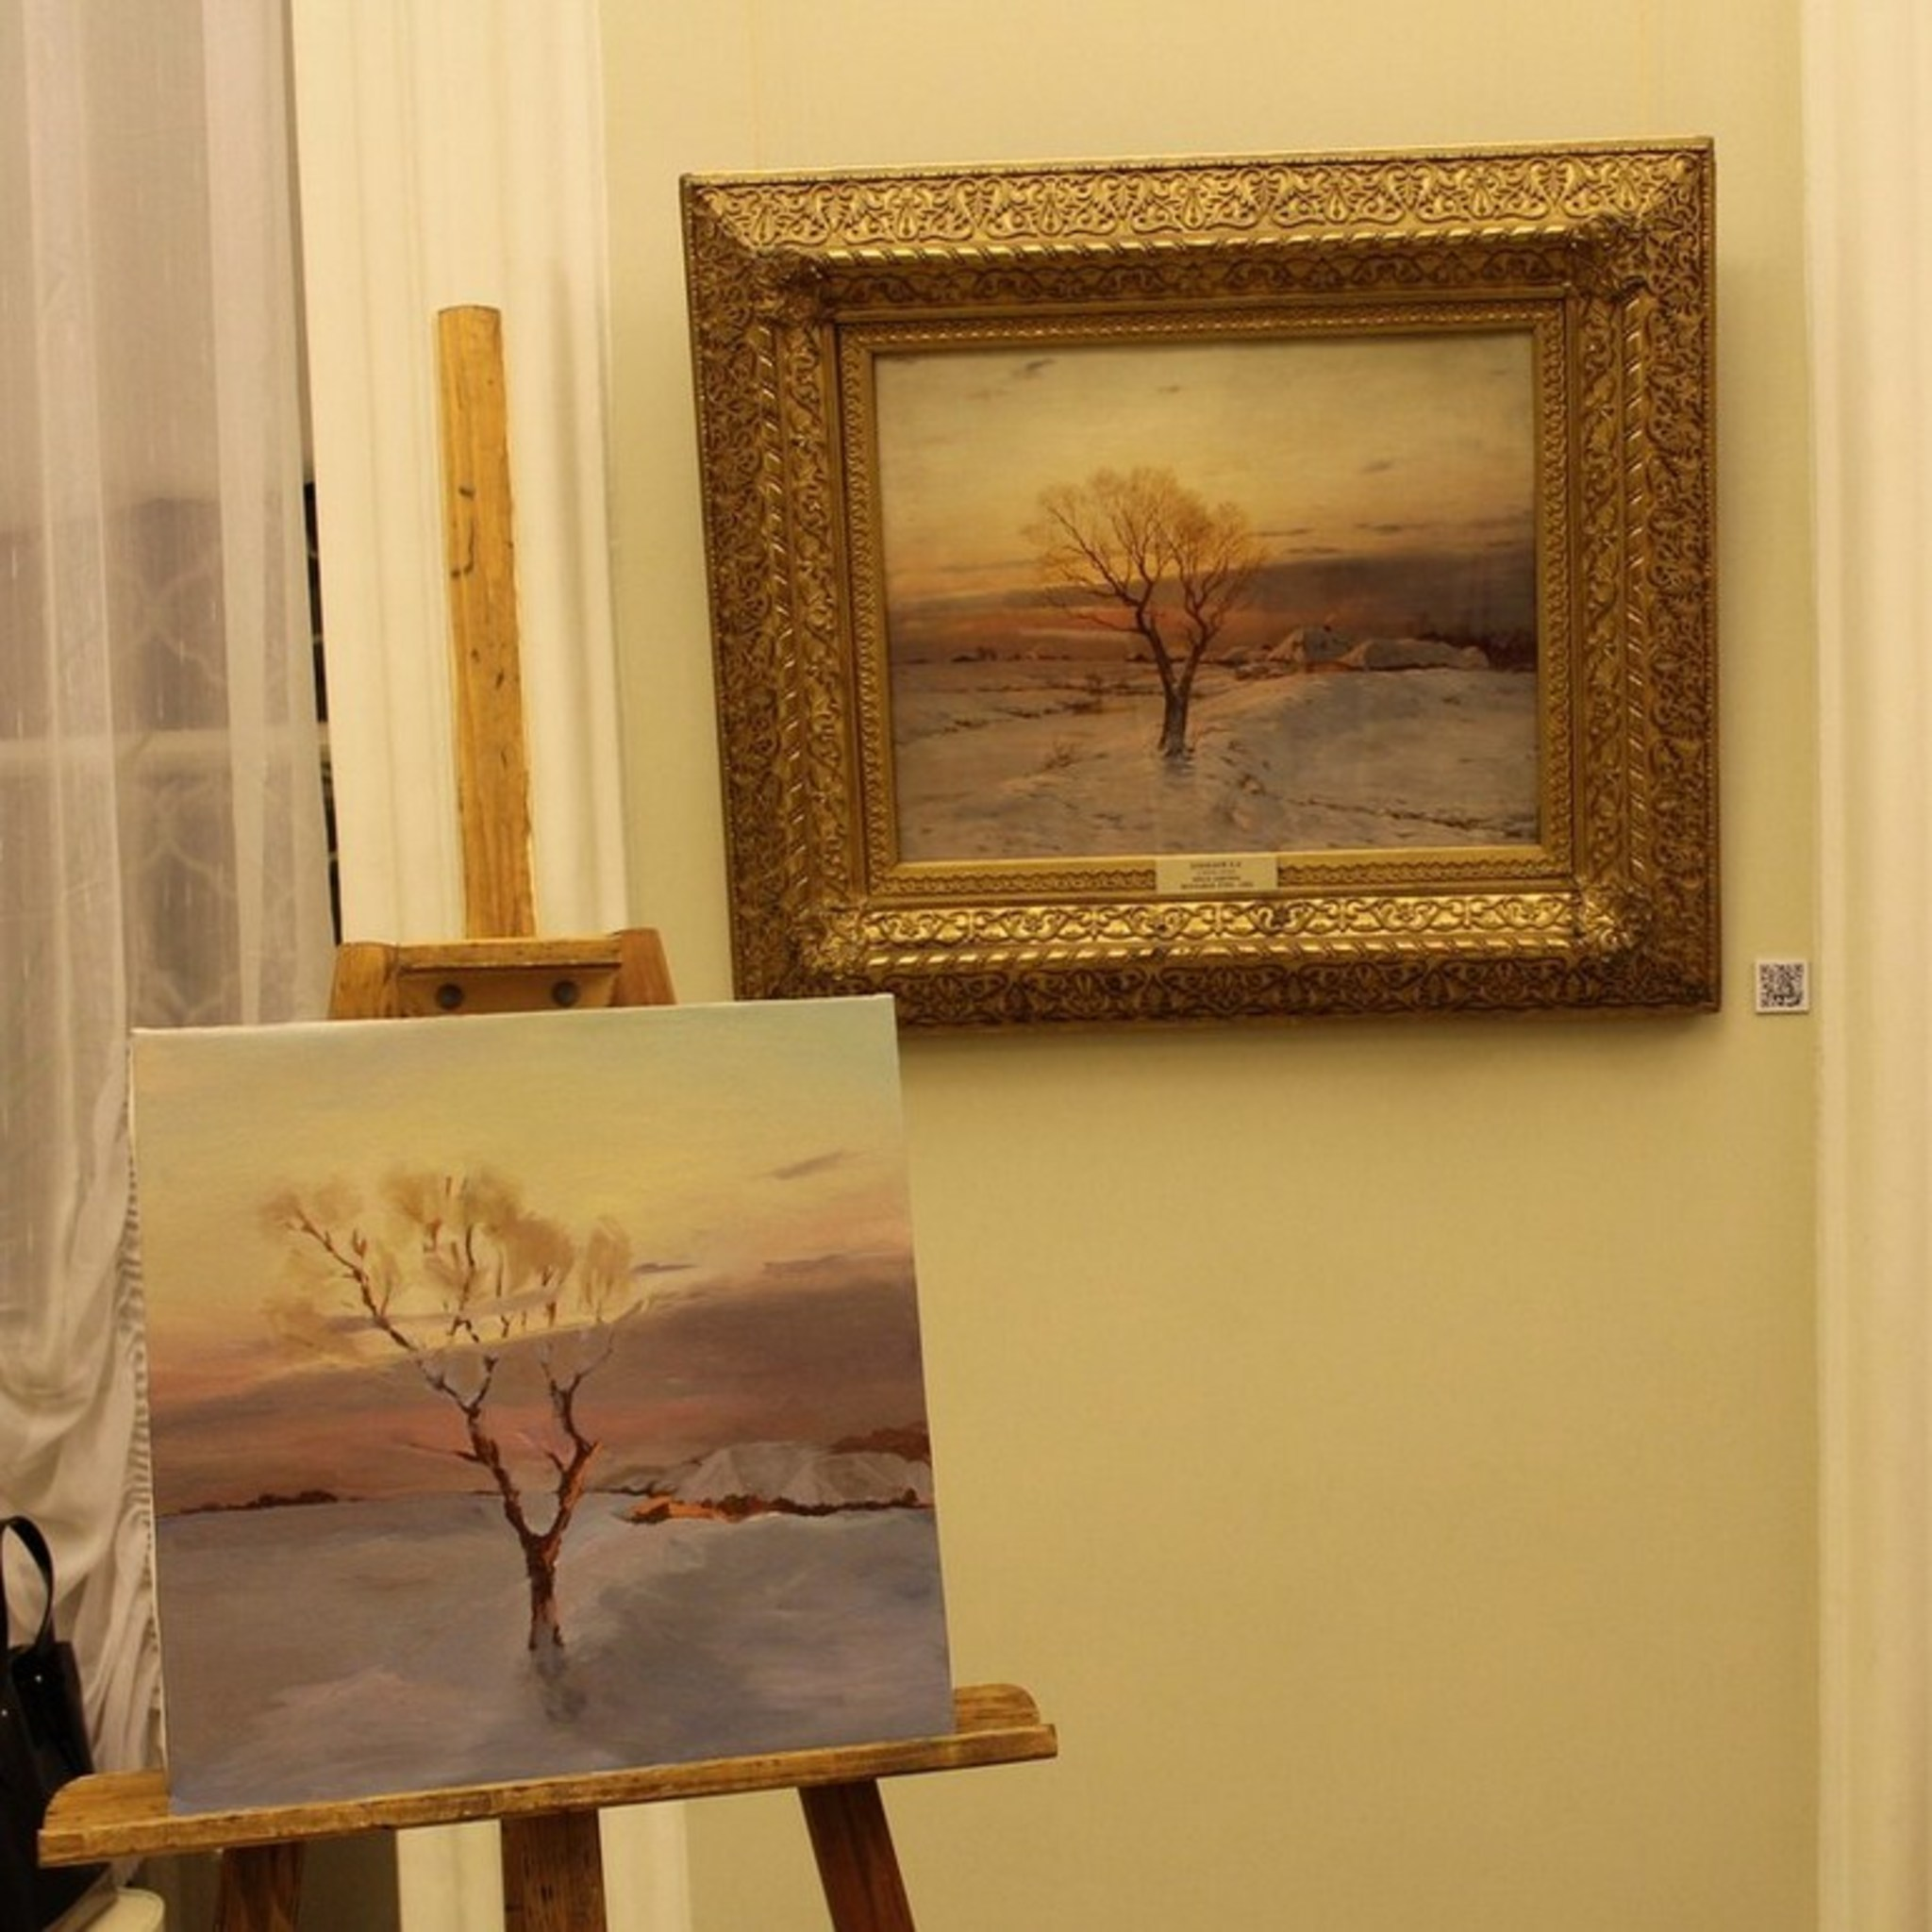 Courses copying paintings in the Perm Gallery